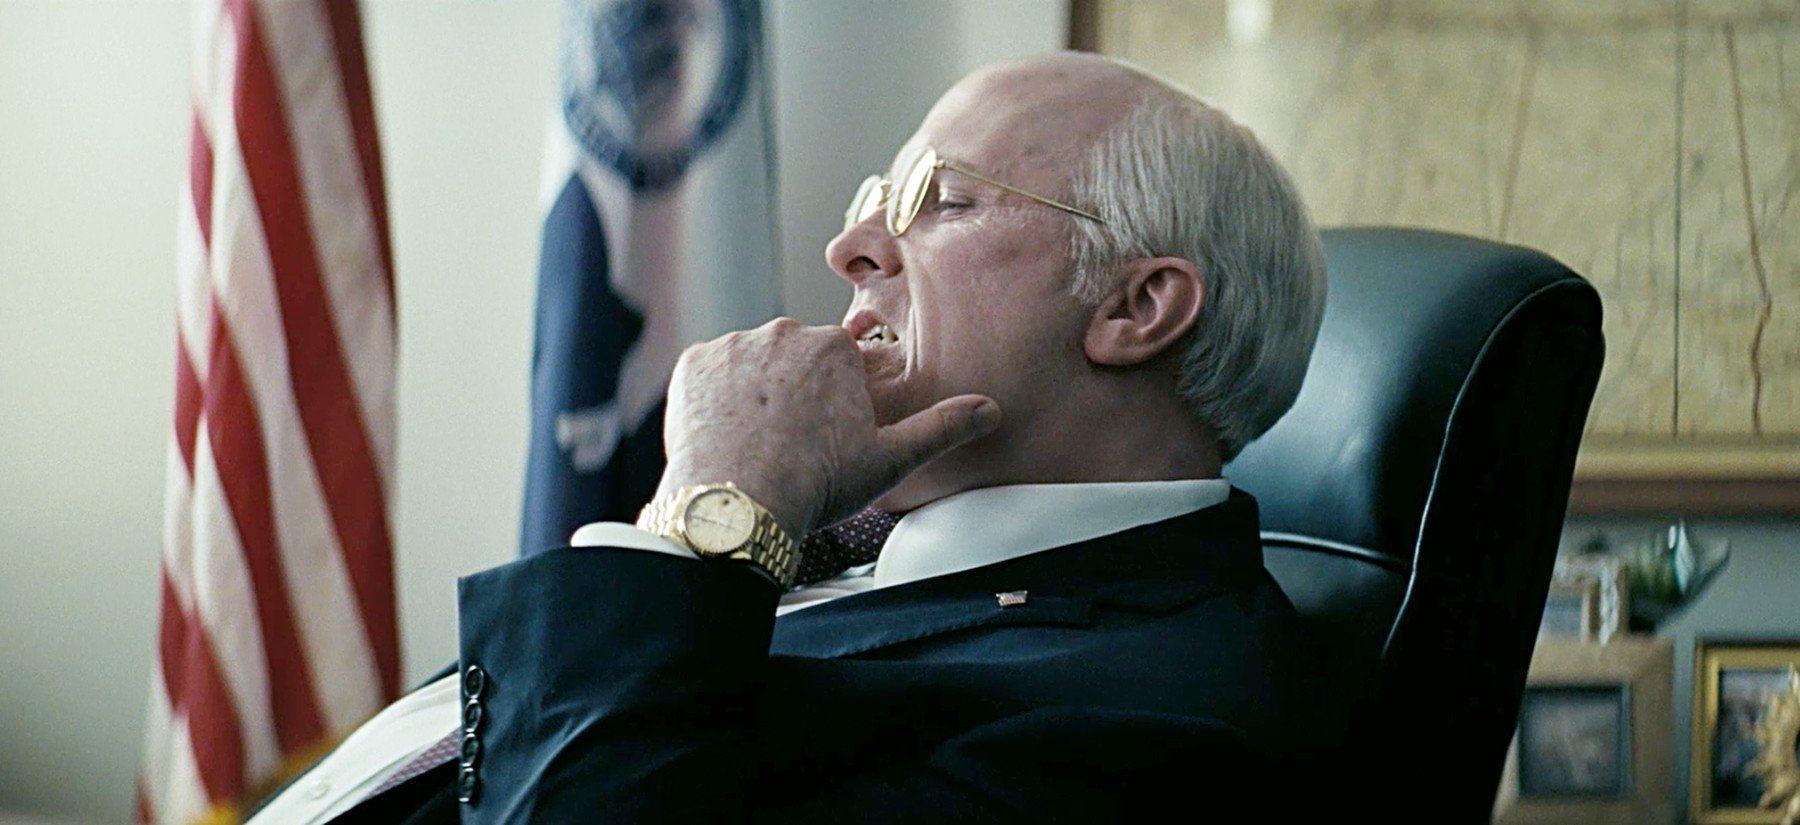 Christian Bale kao Dick Cheney